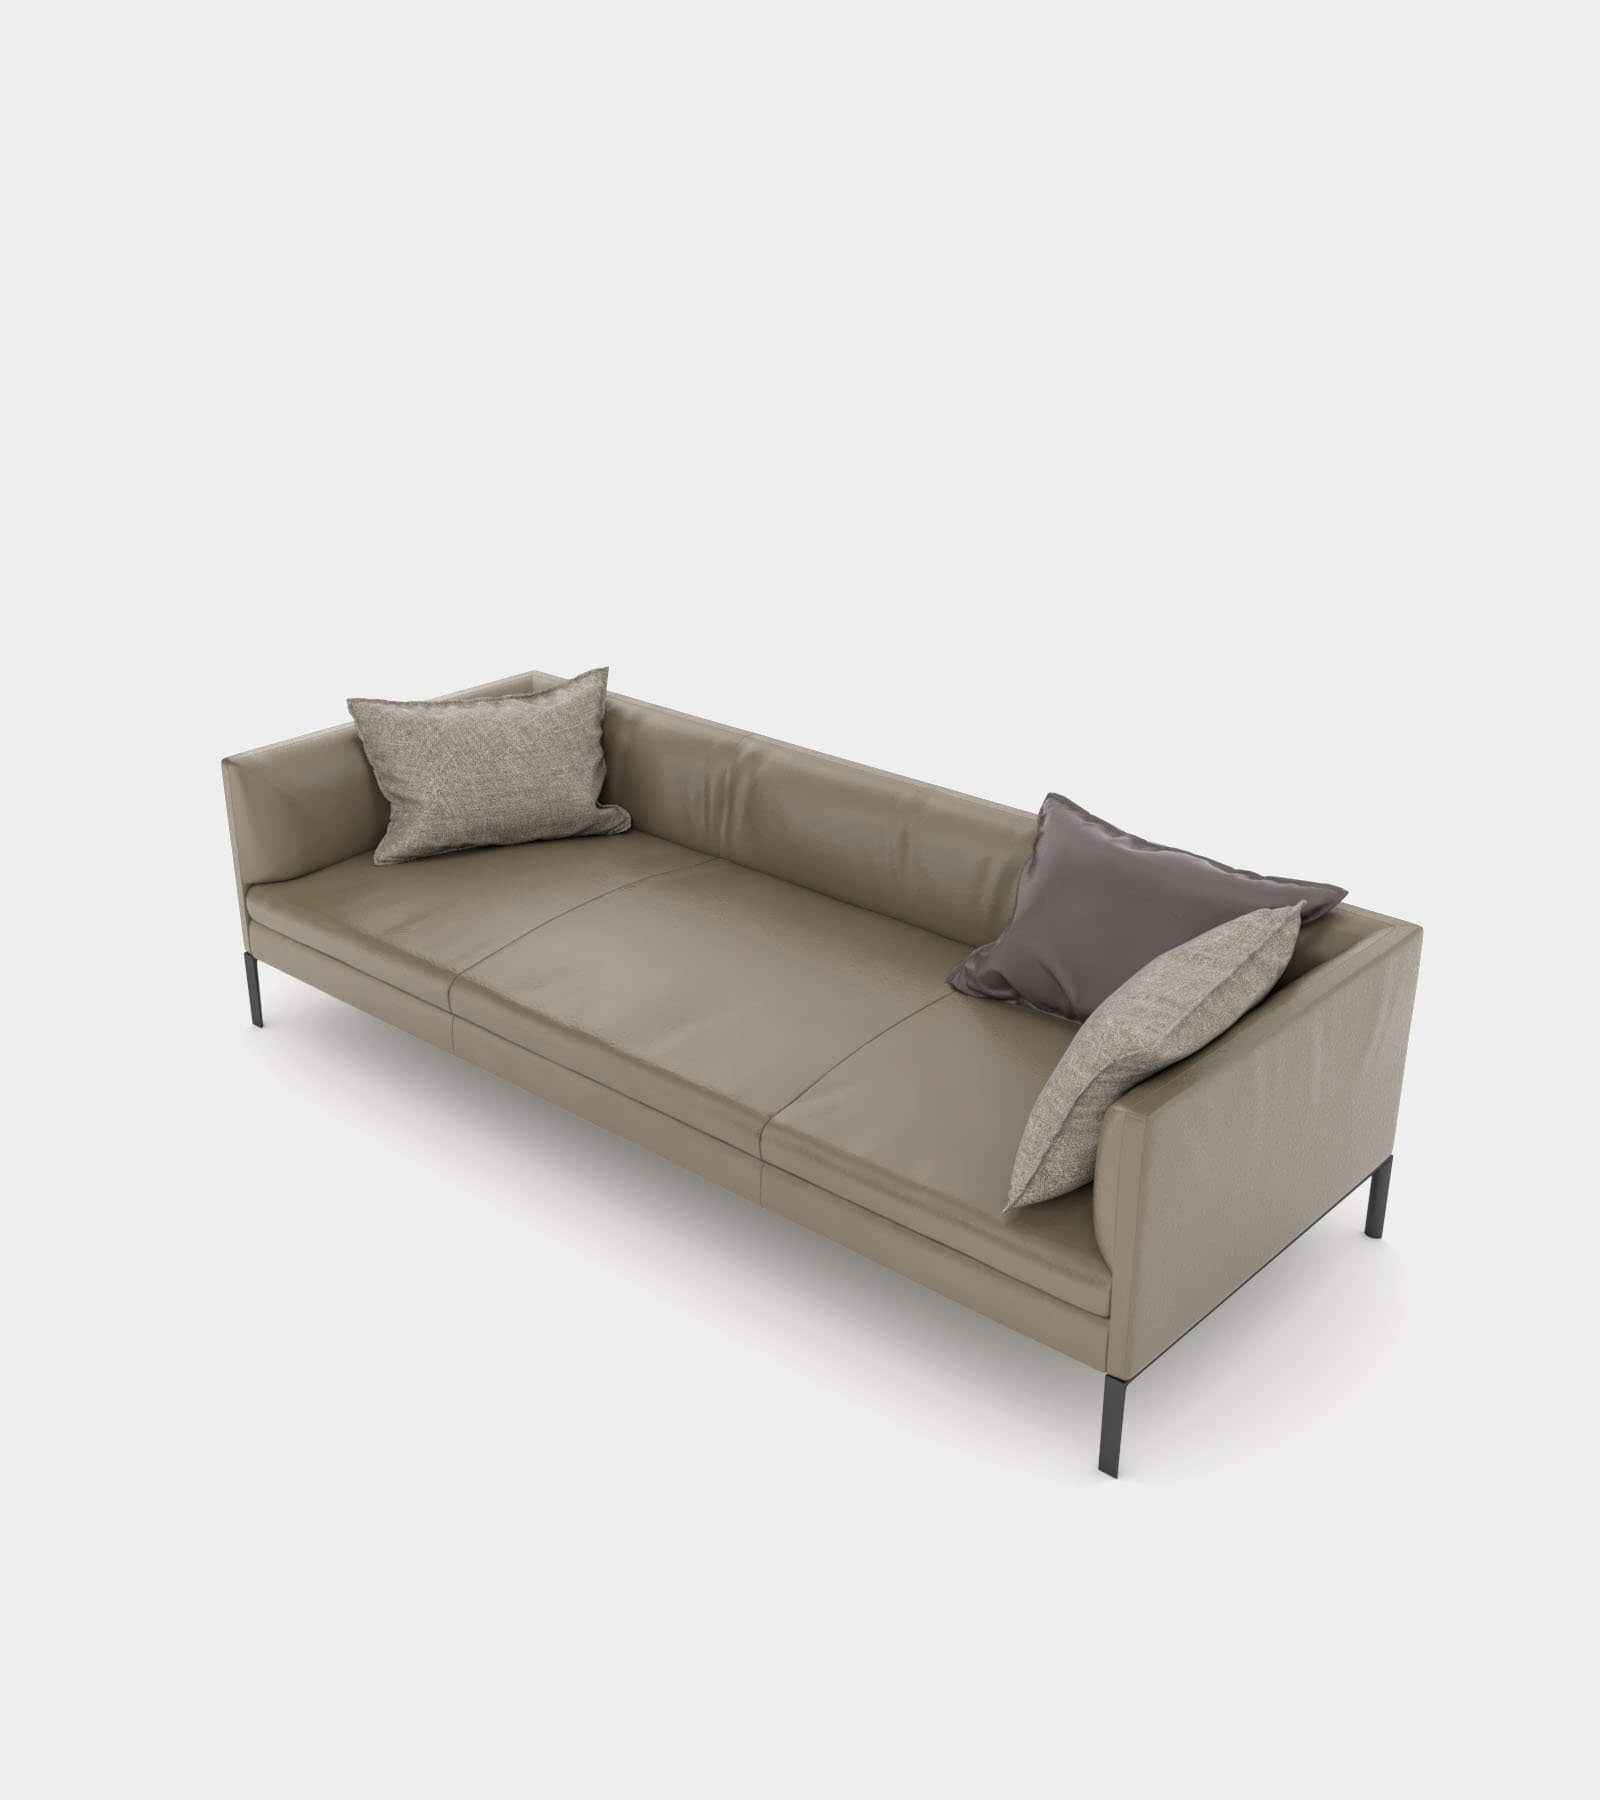 Leather couch with cushions 3D Model